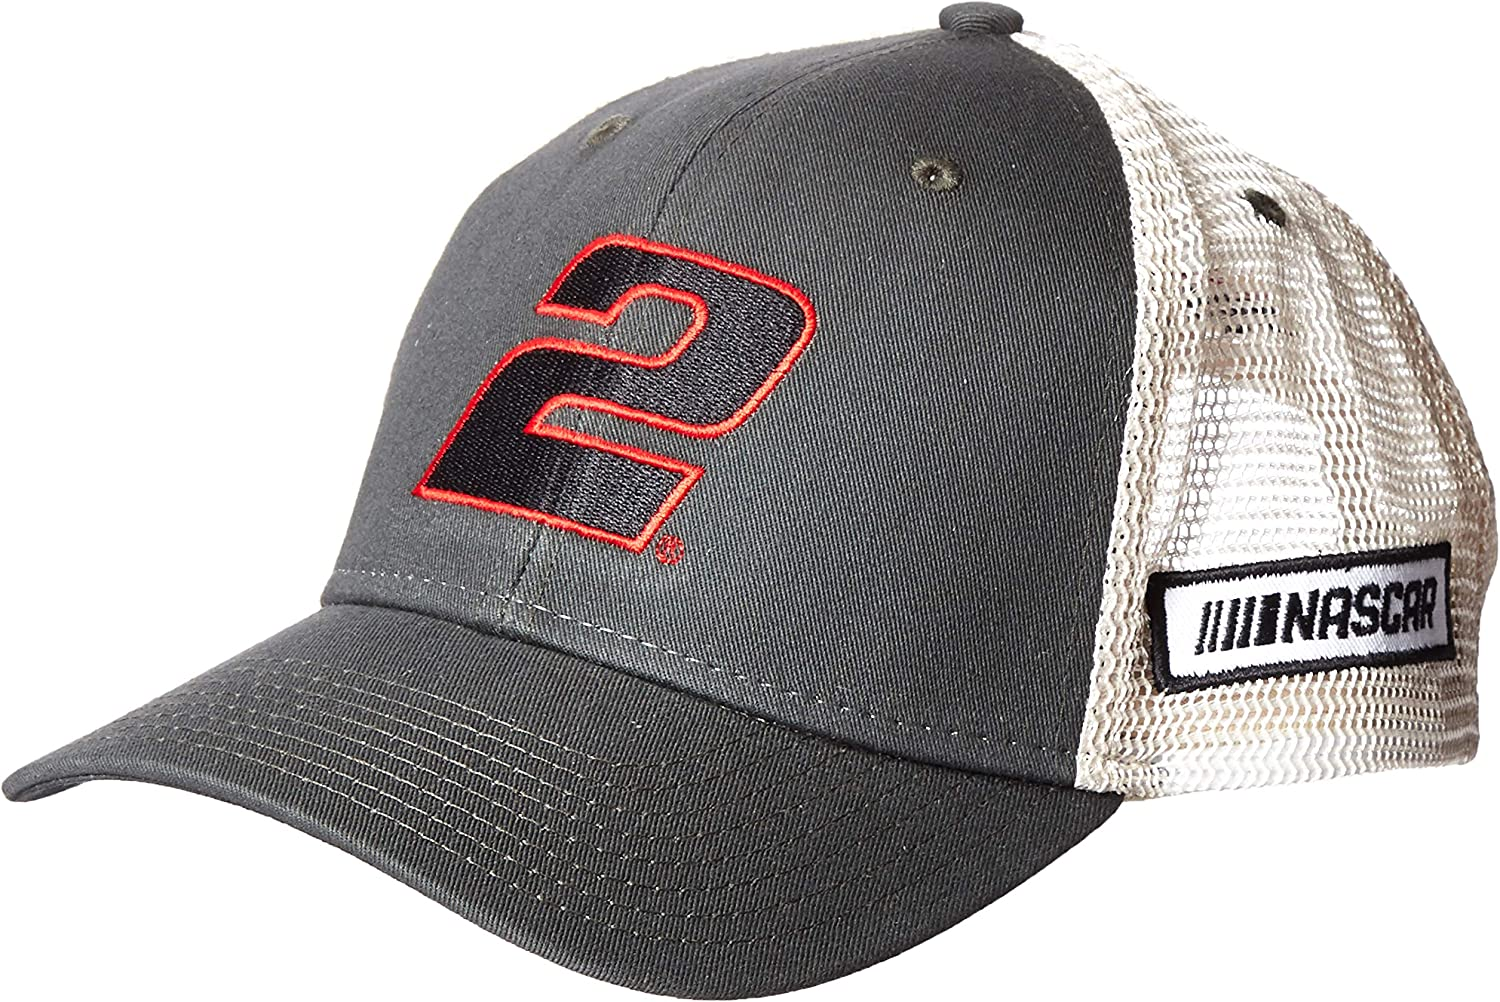 Ouray Sportswear NASCAR Mens Soft Mesh Sideline Cap